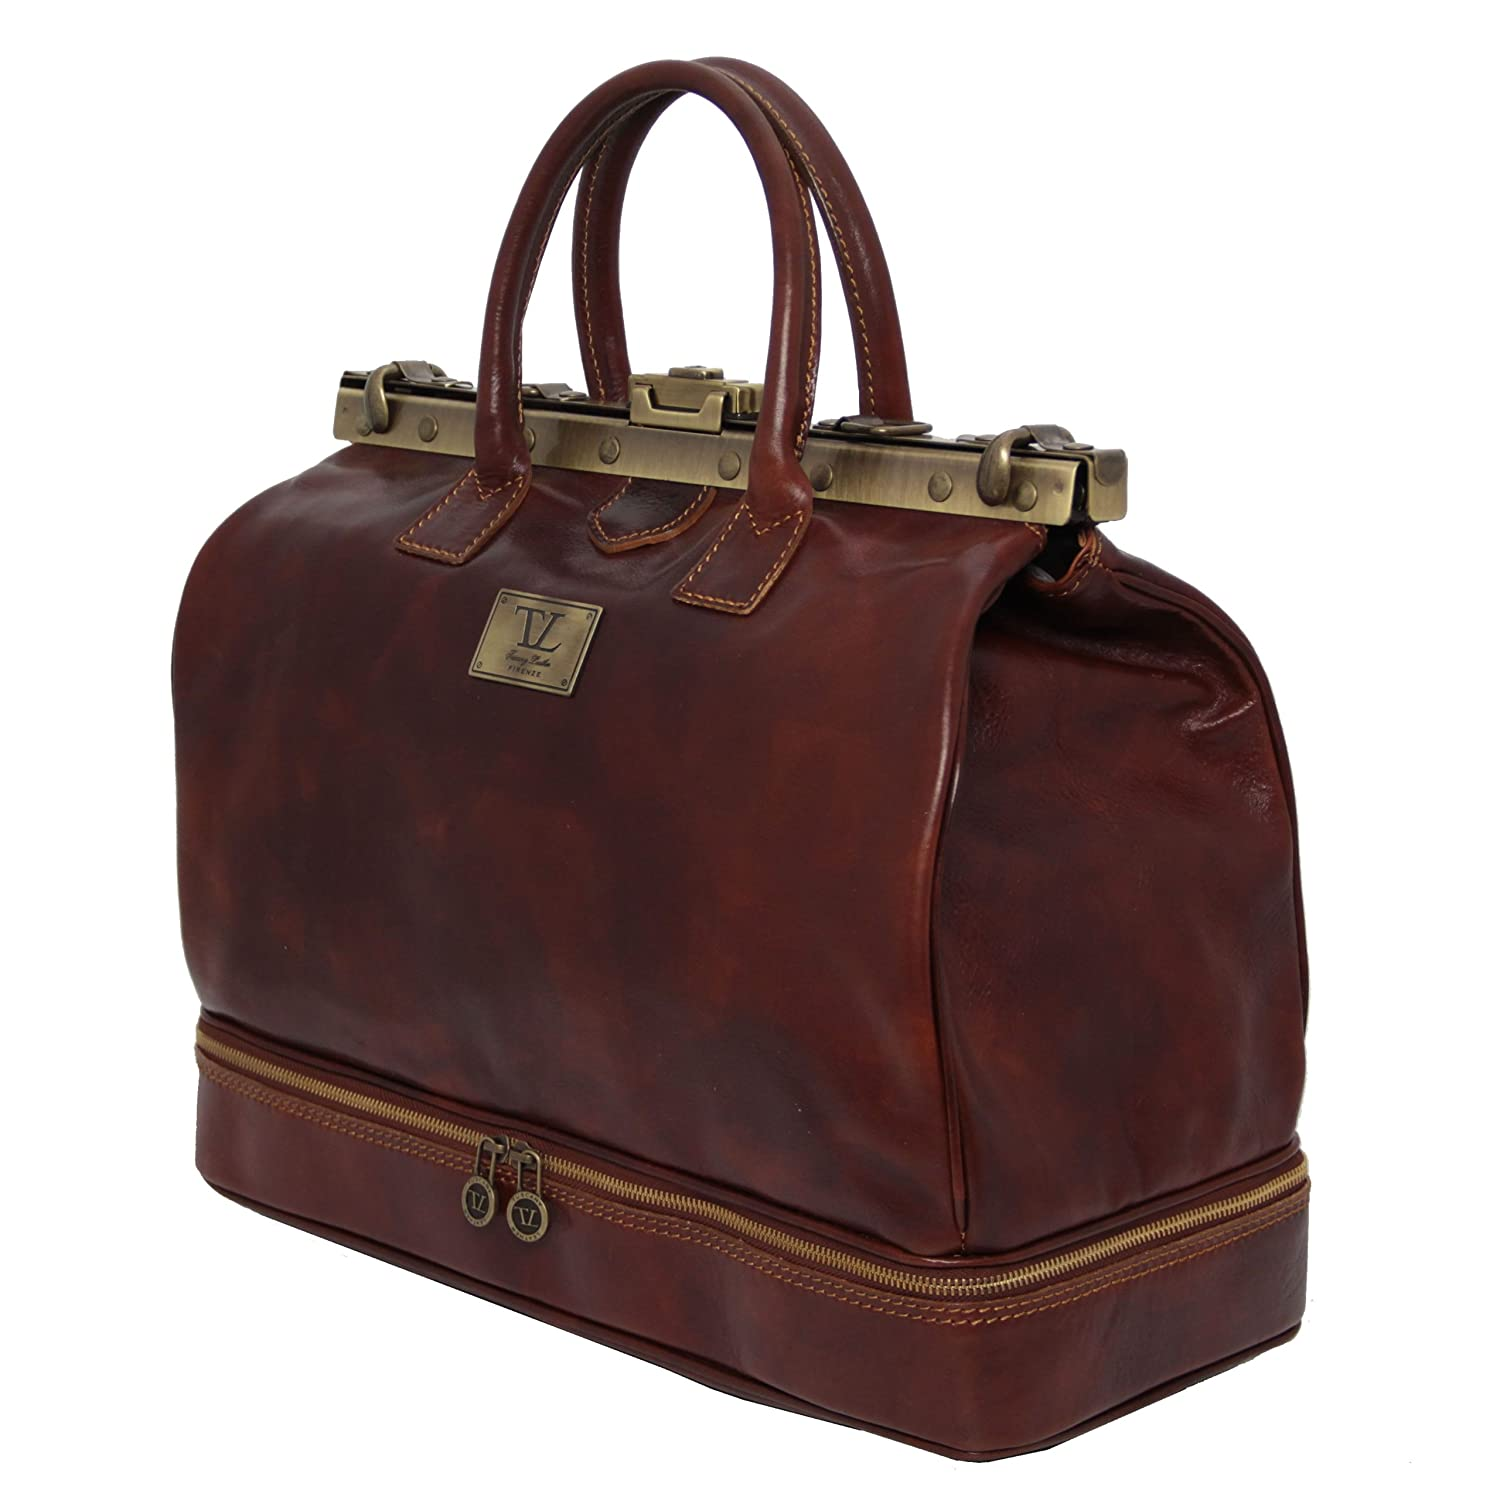 Tuscany Leather 81411854 Barcelona - Estribo de Maul Médico Bolsa de viaje de piel, color marrón: Amazon.es: Zapatos y complementos